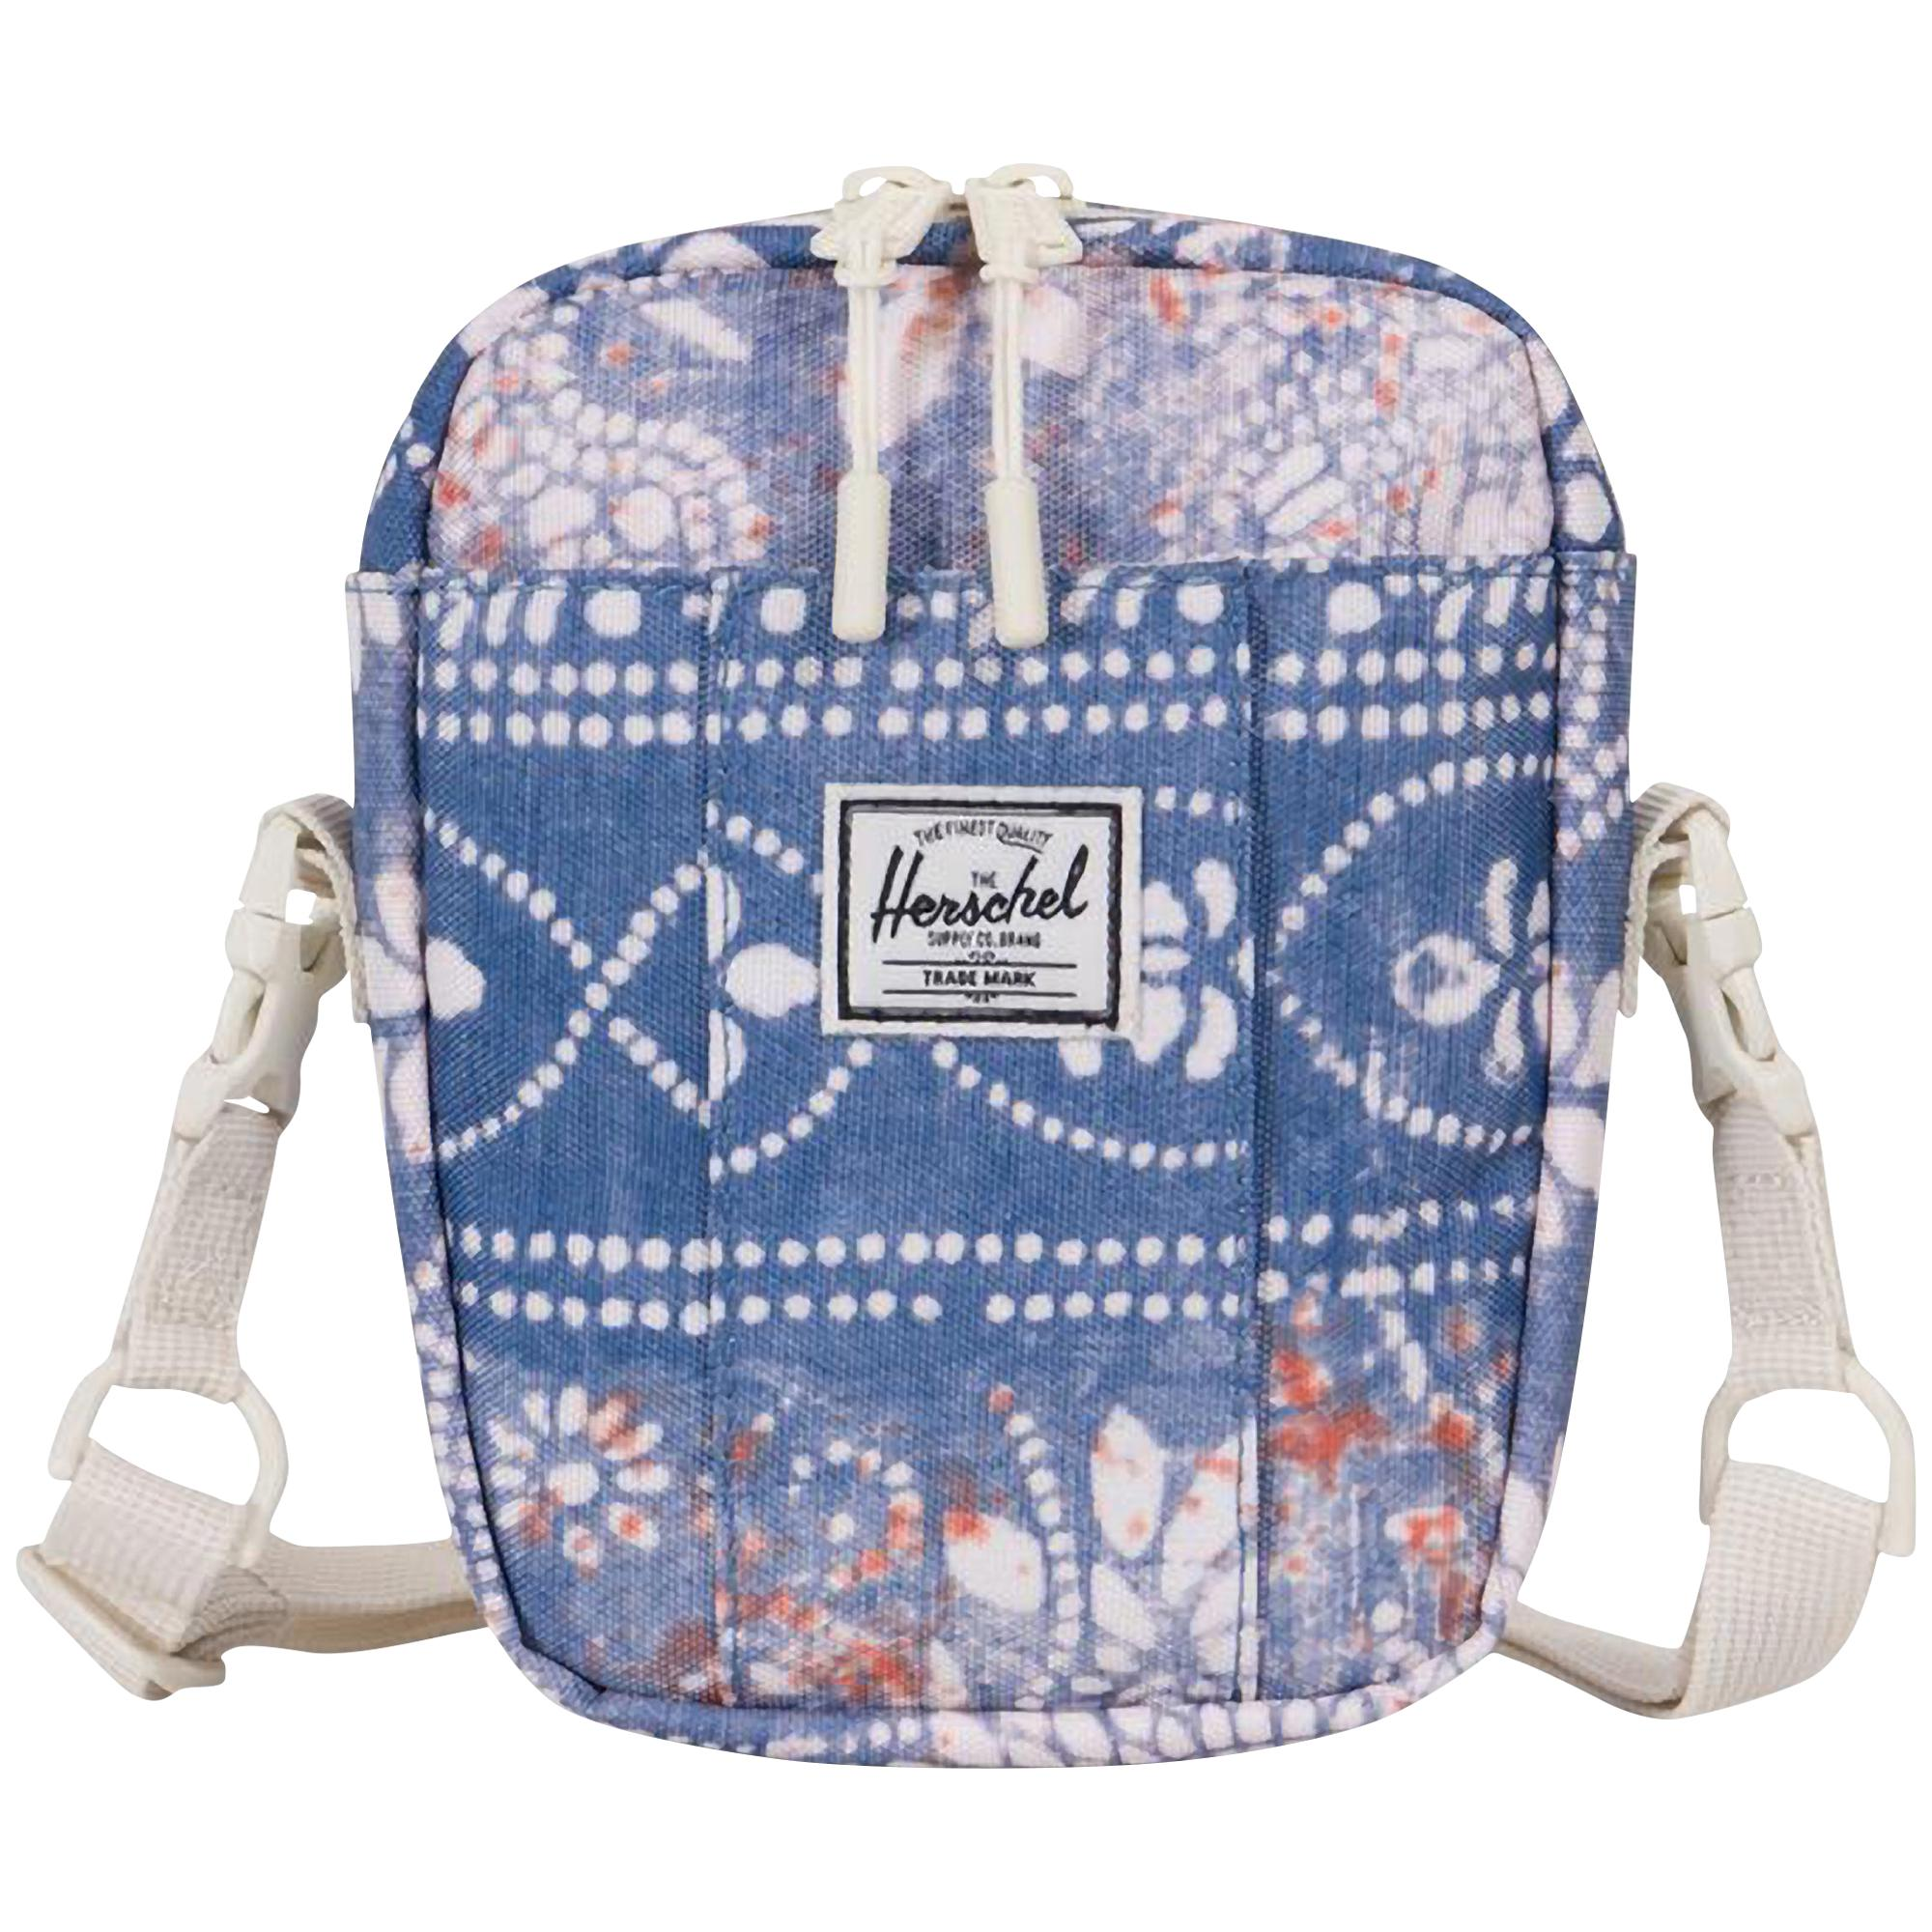 fcedf2a14ec2 Lyst - Herschel Supply Co. Cruz Crossbody in Blue - Save ...